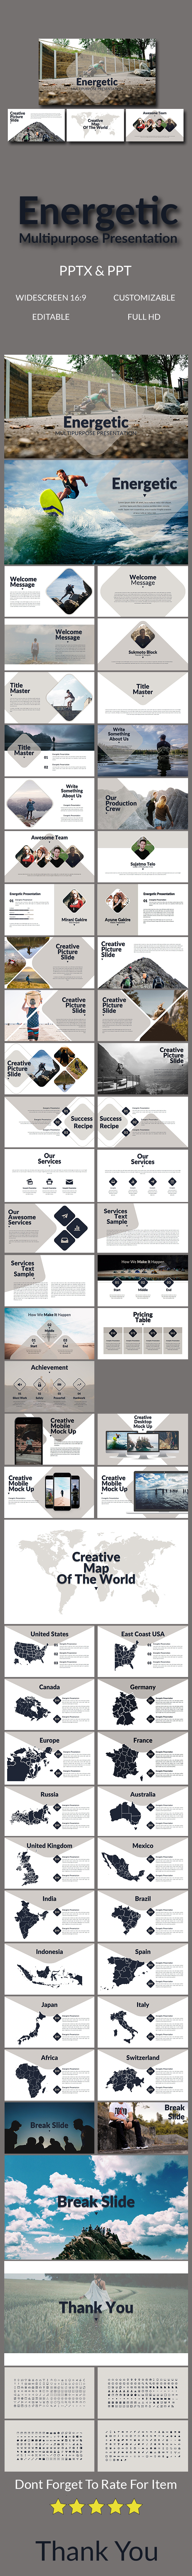 Energetic Multipurpose Presentation - Abstract PowerPoint Templates